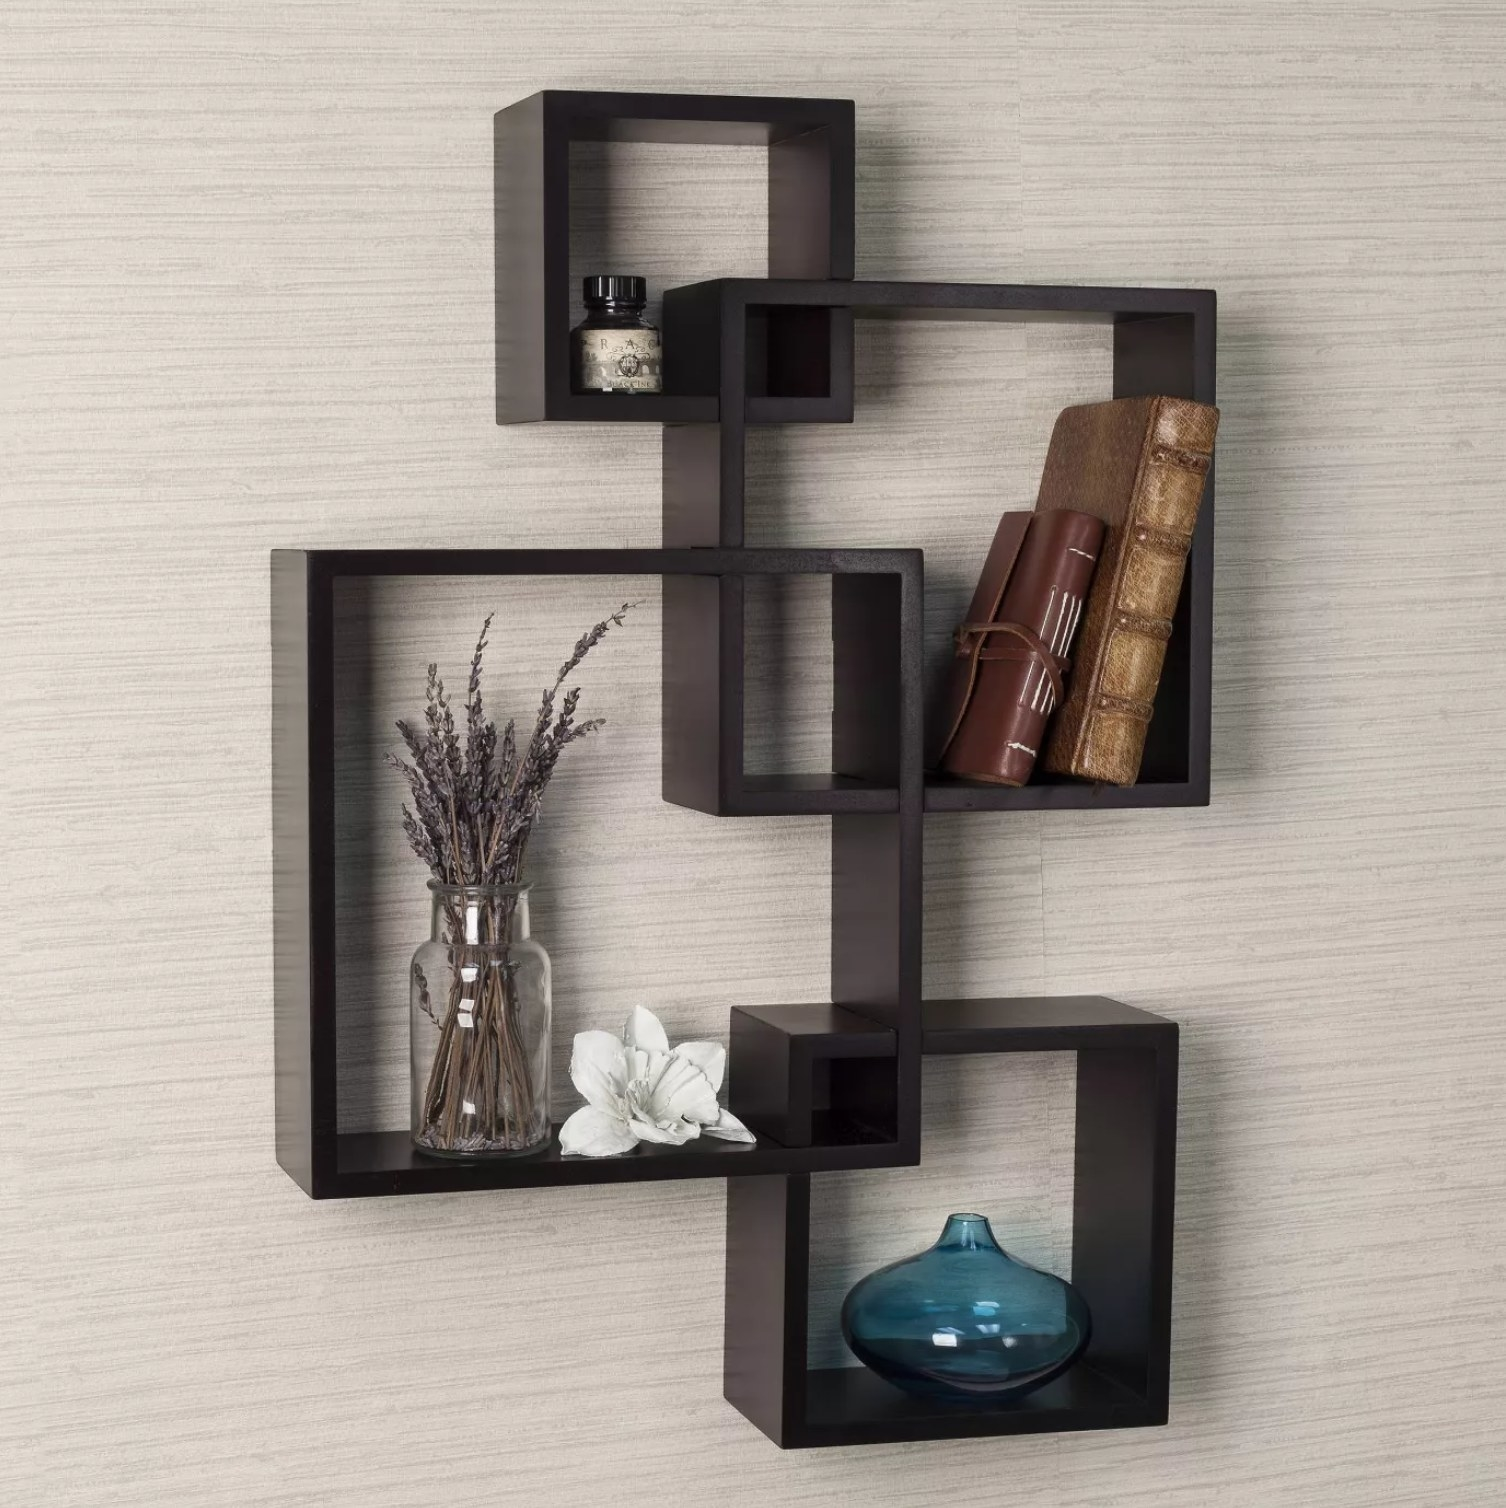 The set of four shelves in dark brown with books and other decorations